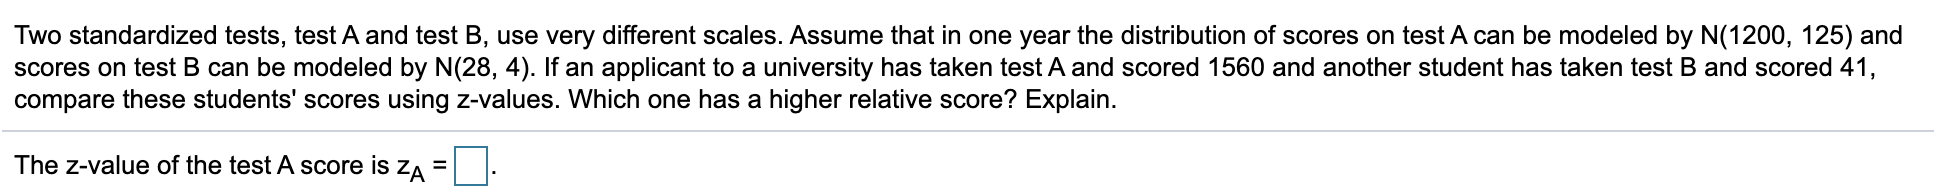 Two standardized tests, test A and test B, use very different scales. Assume that in one year the distribution of scores on t